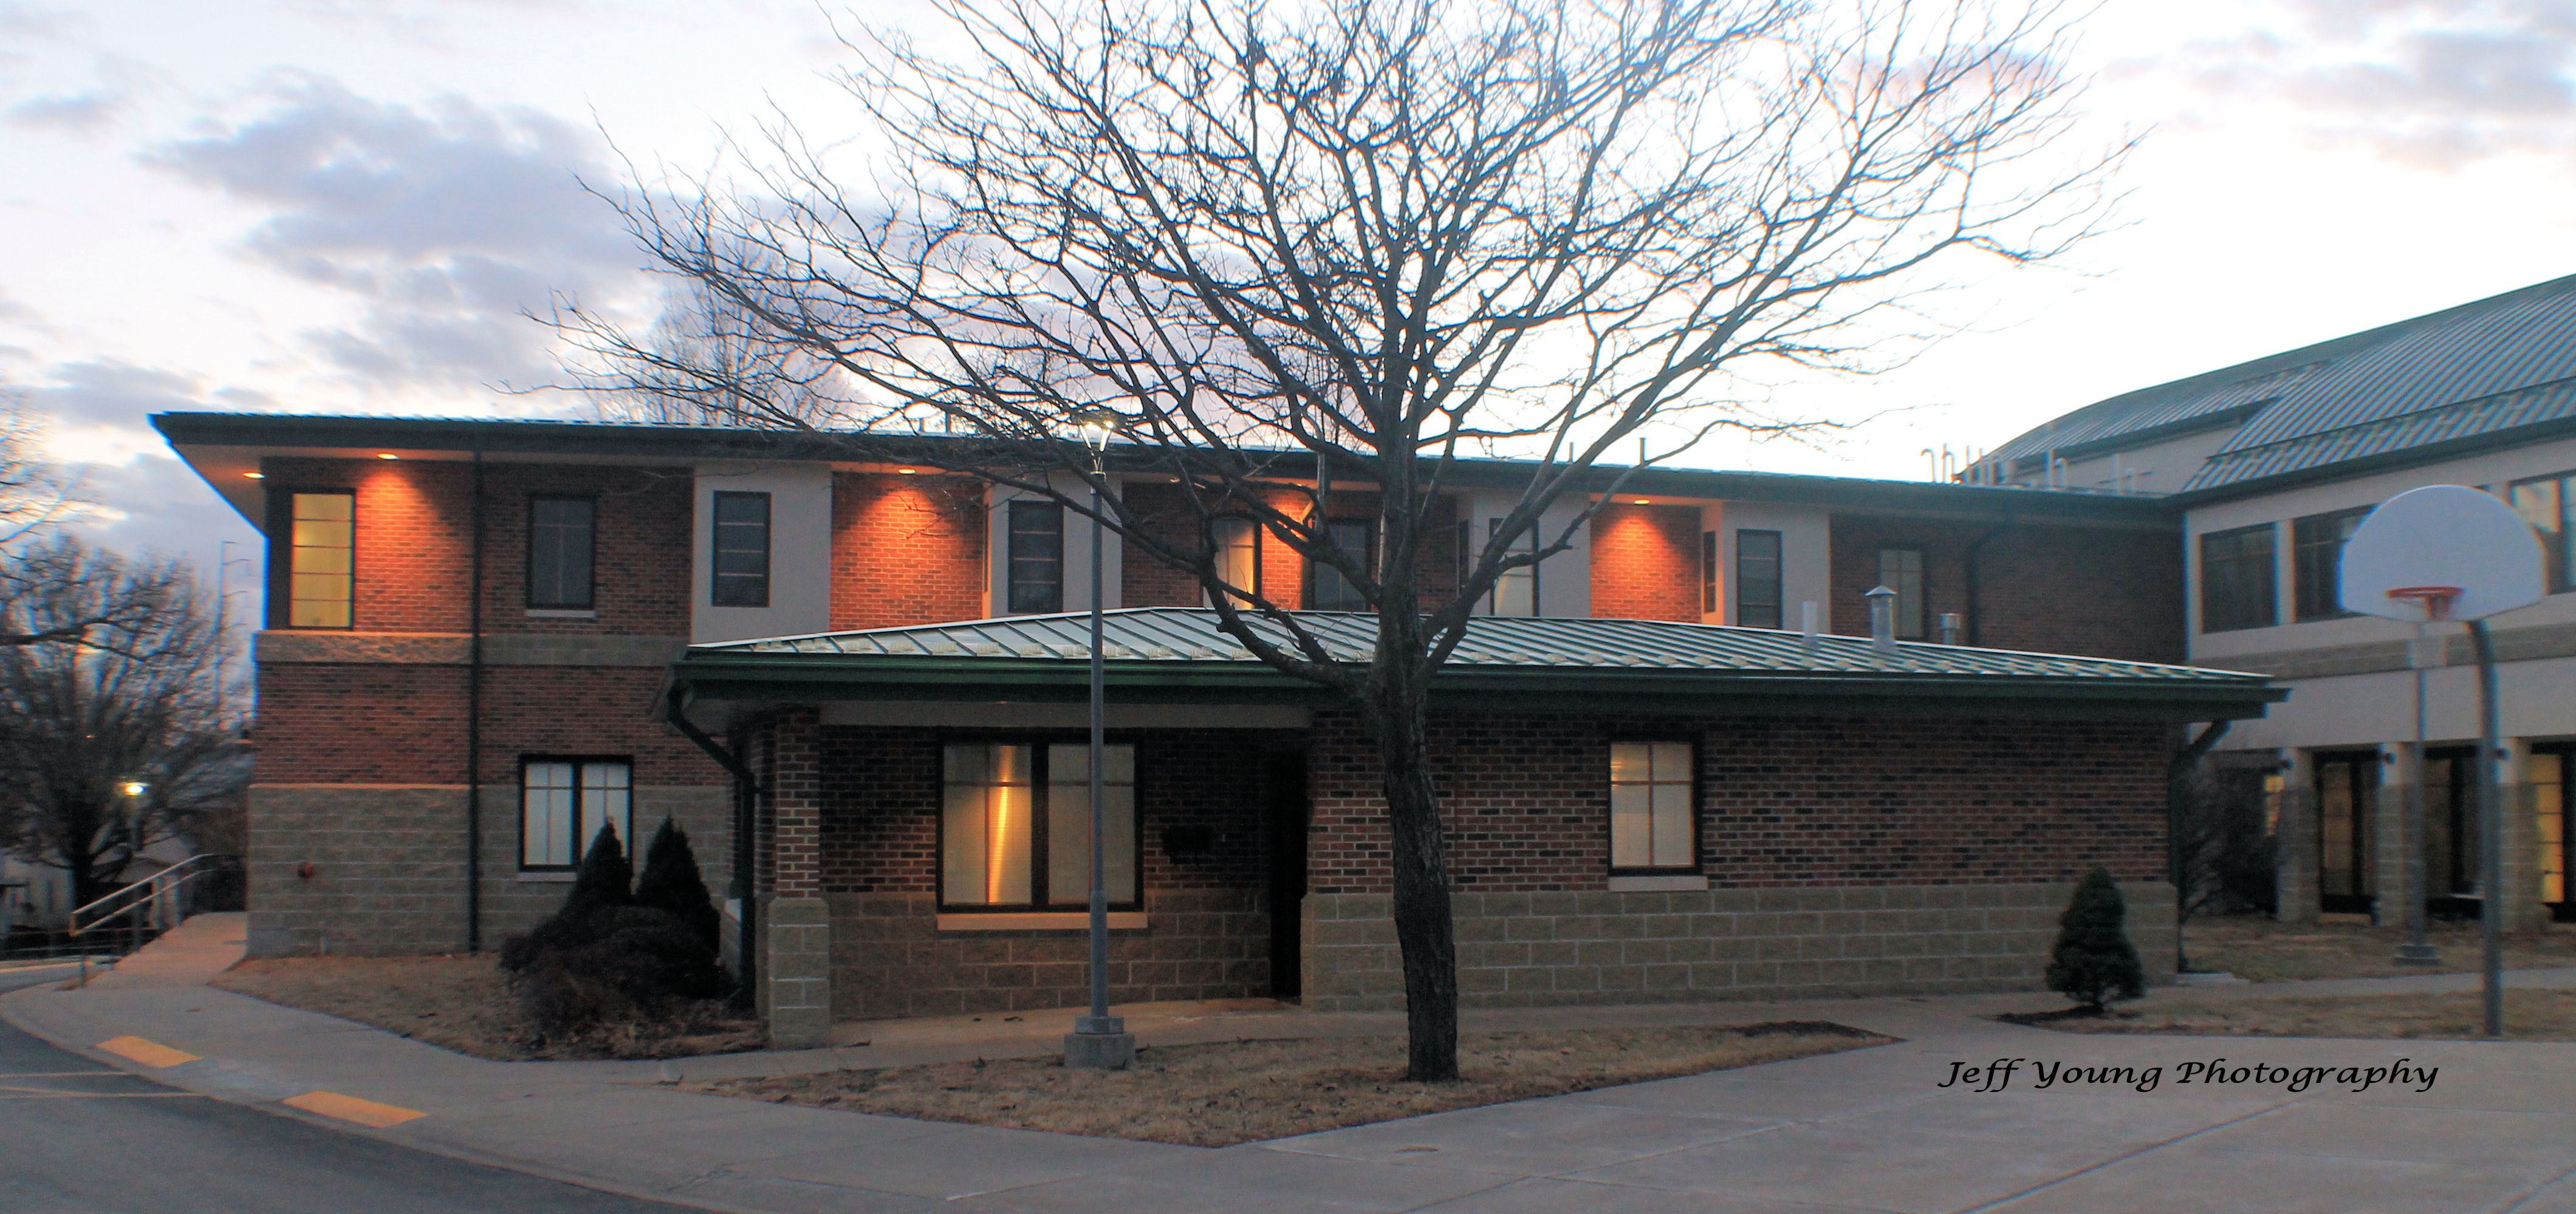 A two story brick building with a tree and light pole in front yard. Nigh lights shining in the dusk.